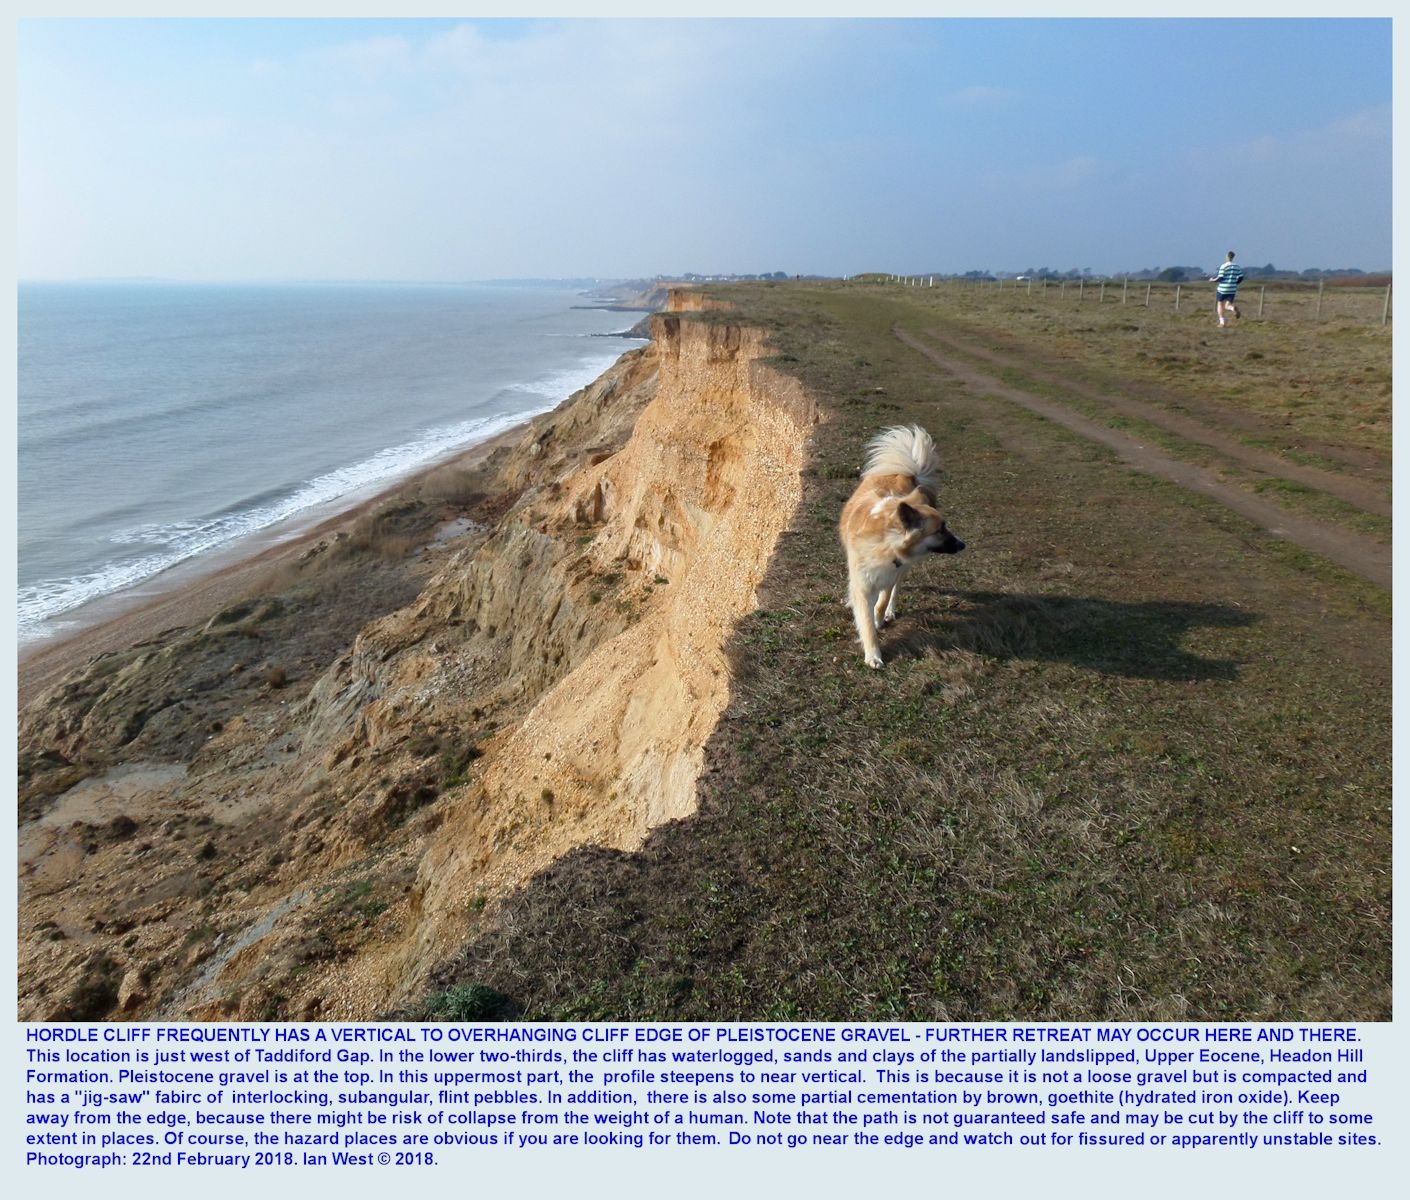 Pleistocene gravel over clays and sands of the Eocene, Headon Hill Formation Hordle Cliff, Hampshire, with a dog, 22nd February, 2018